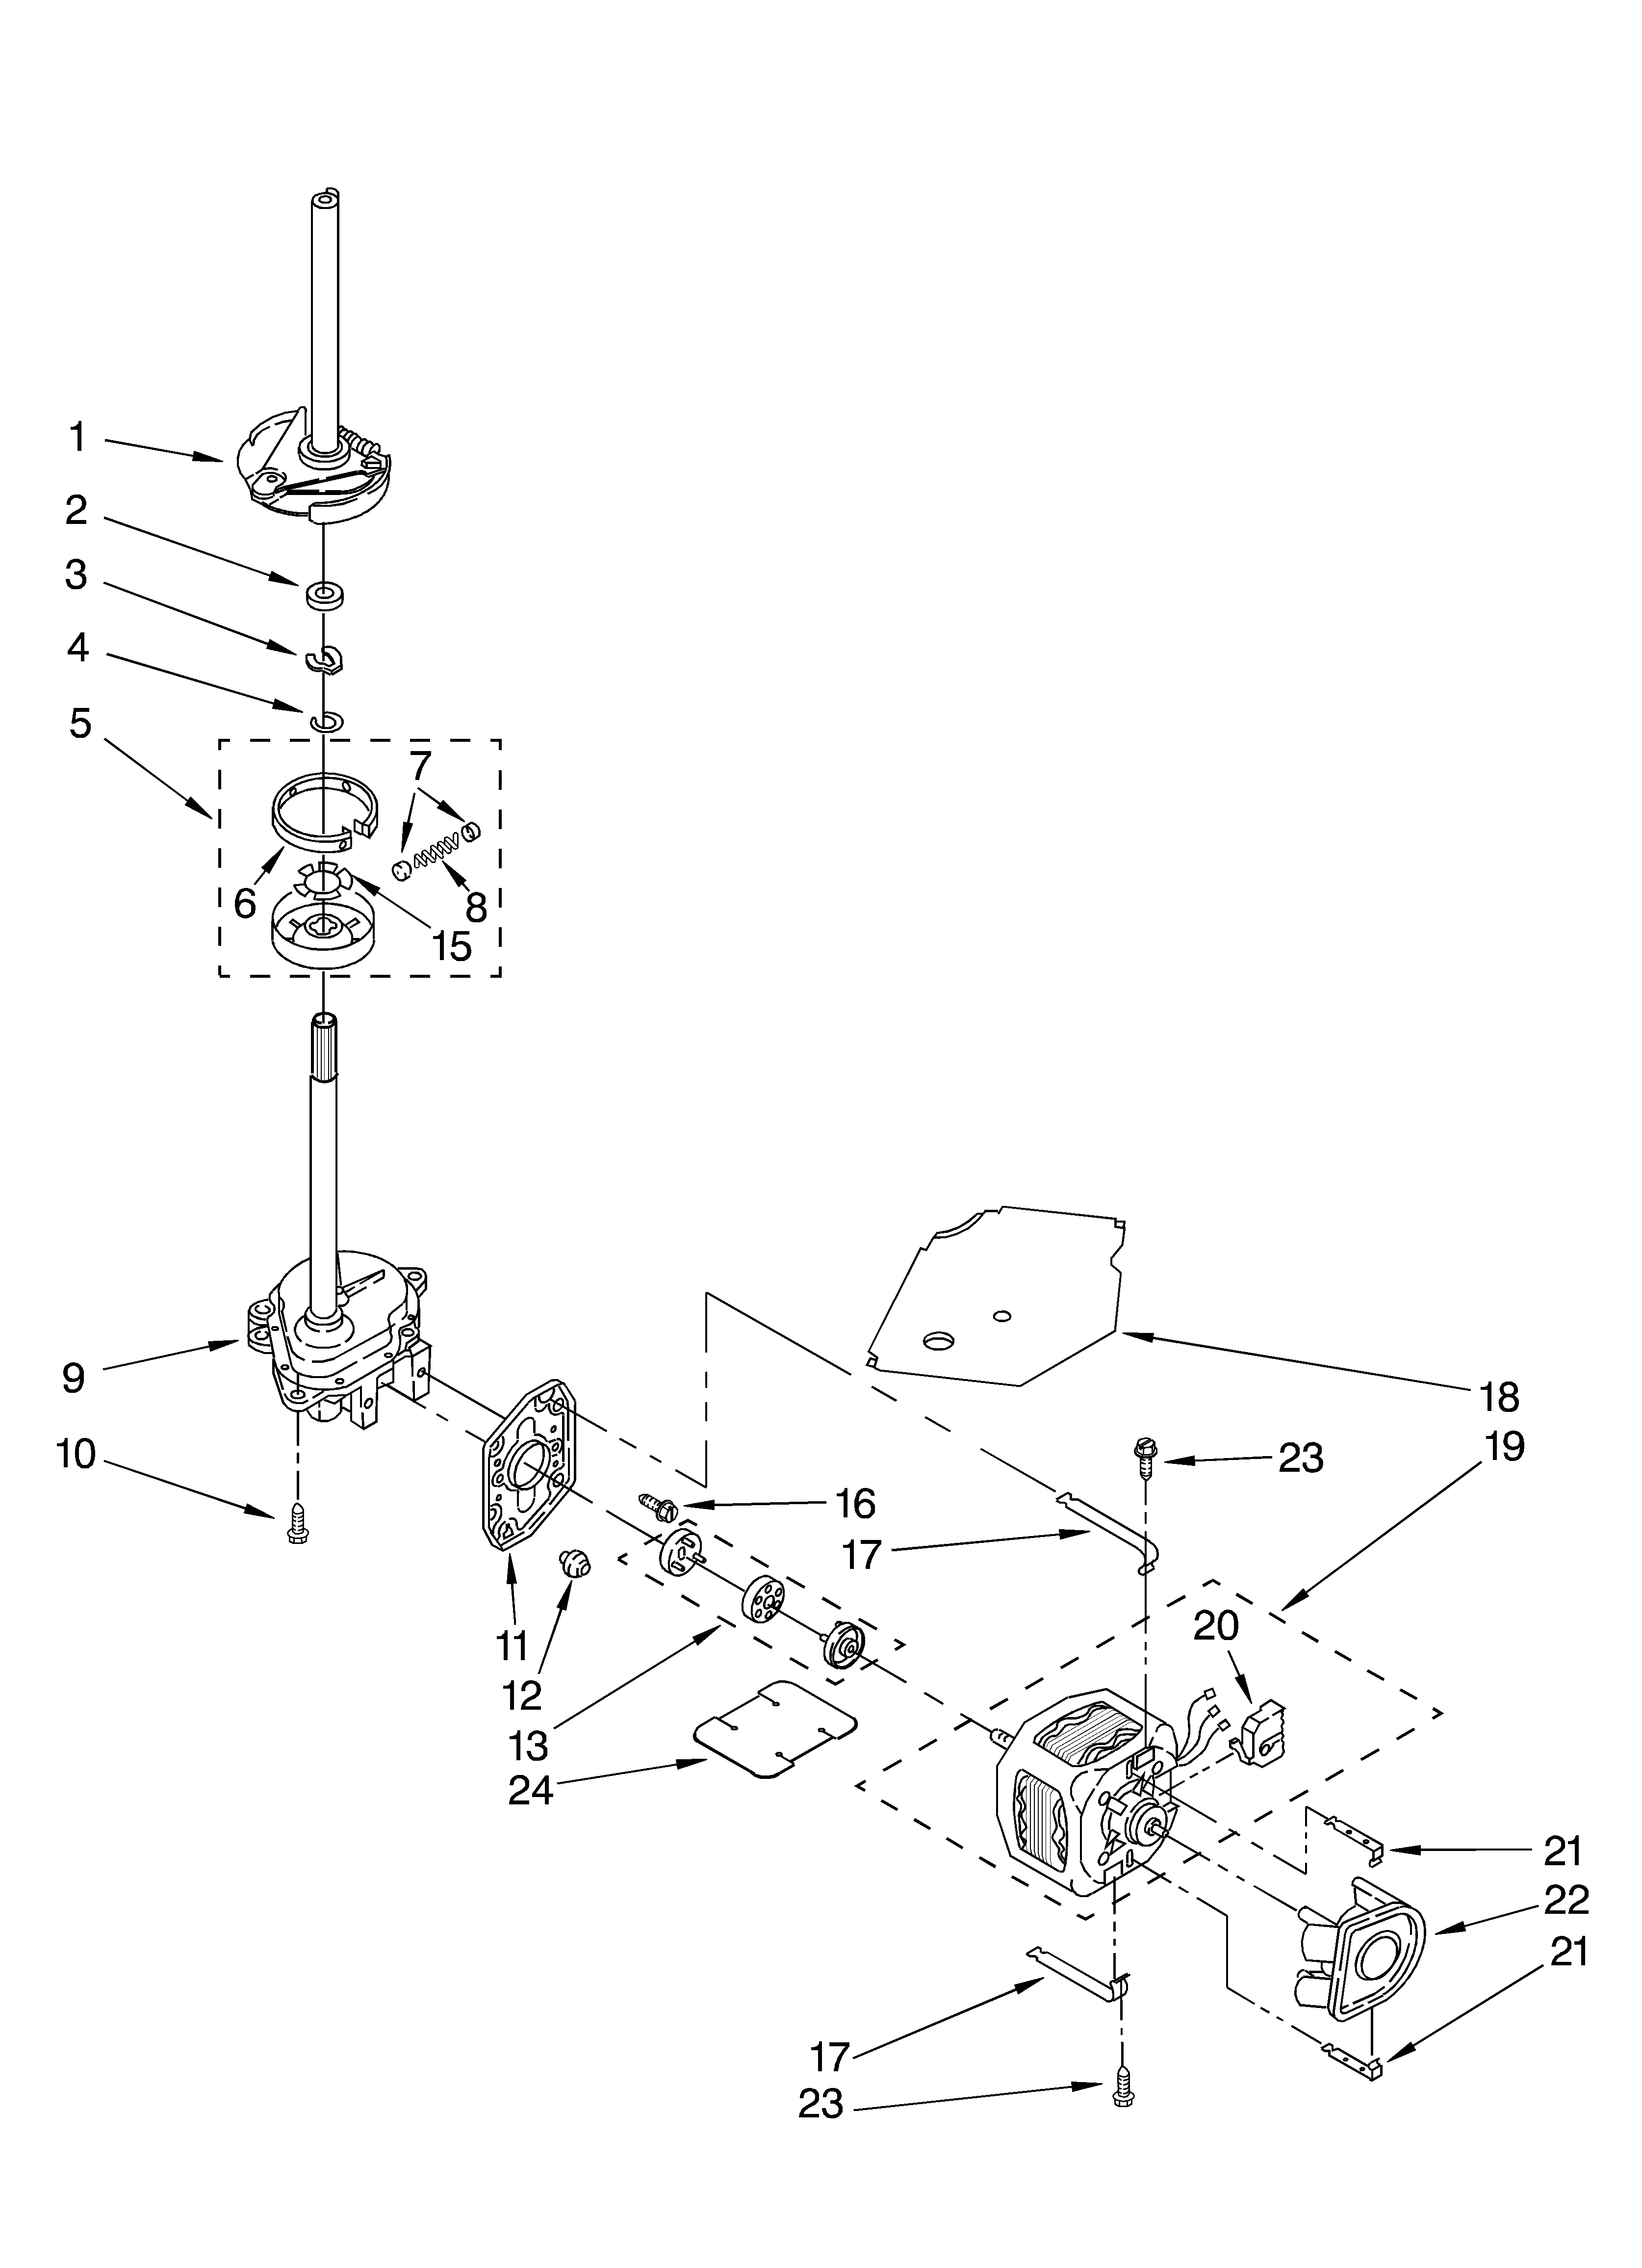 Whirlpool GSQ9631LL1 brake, clutch, gearcase, motor and pump parts diagram